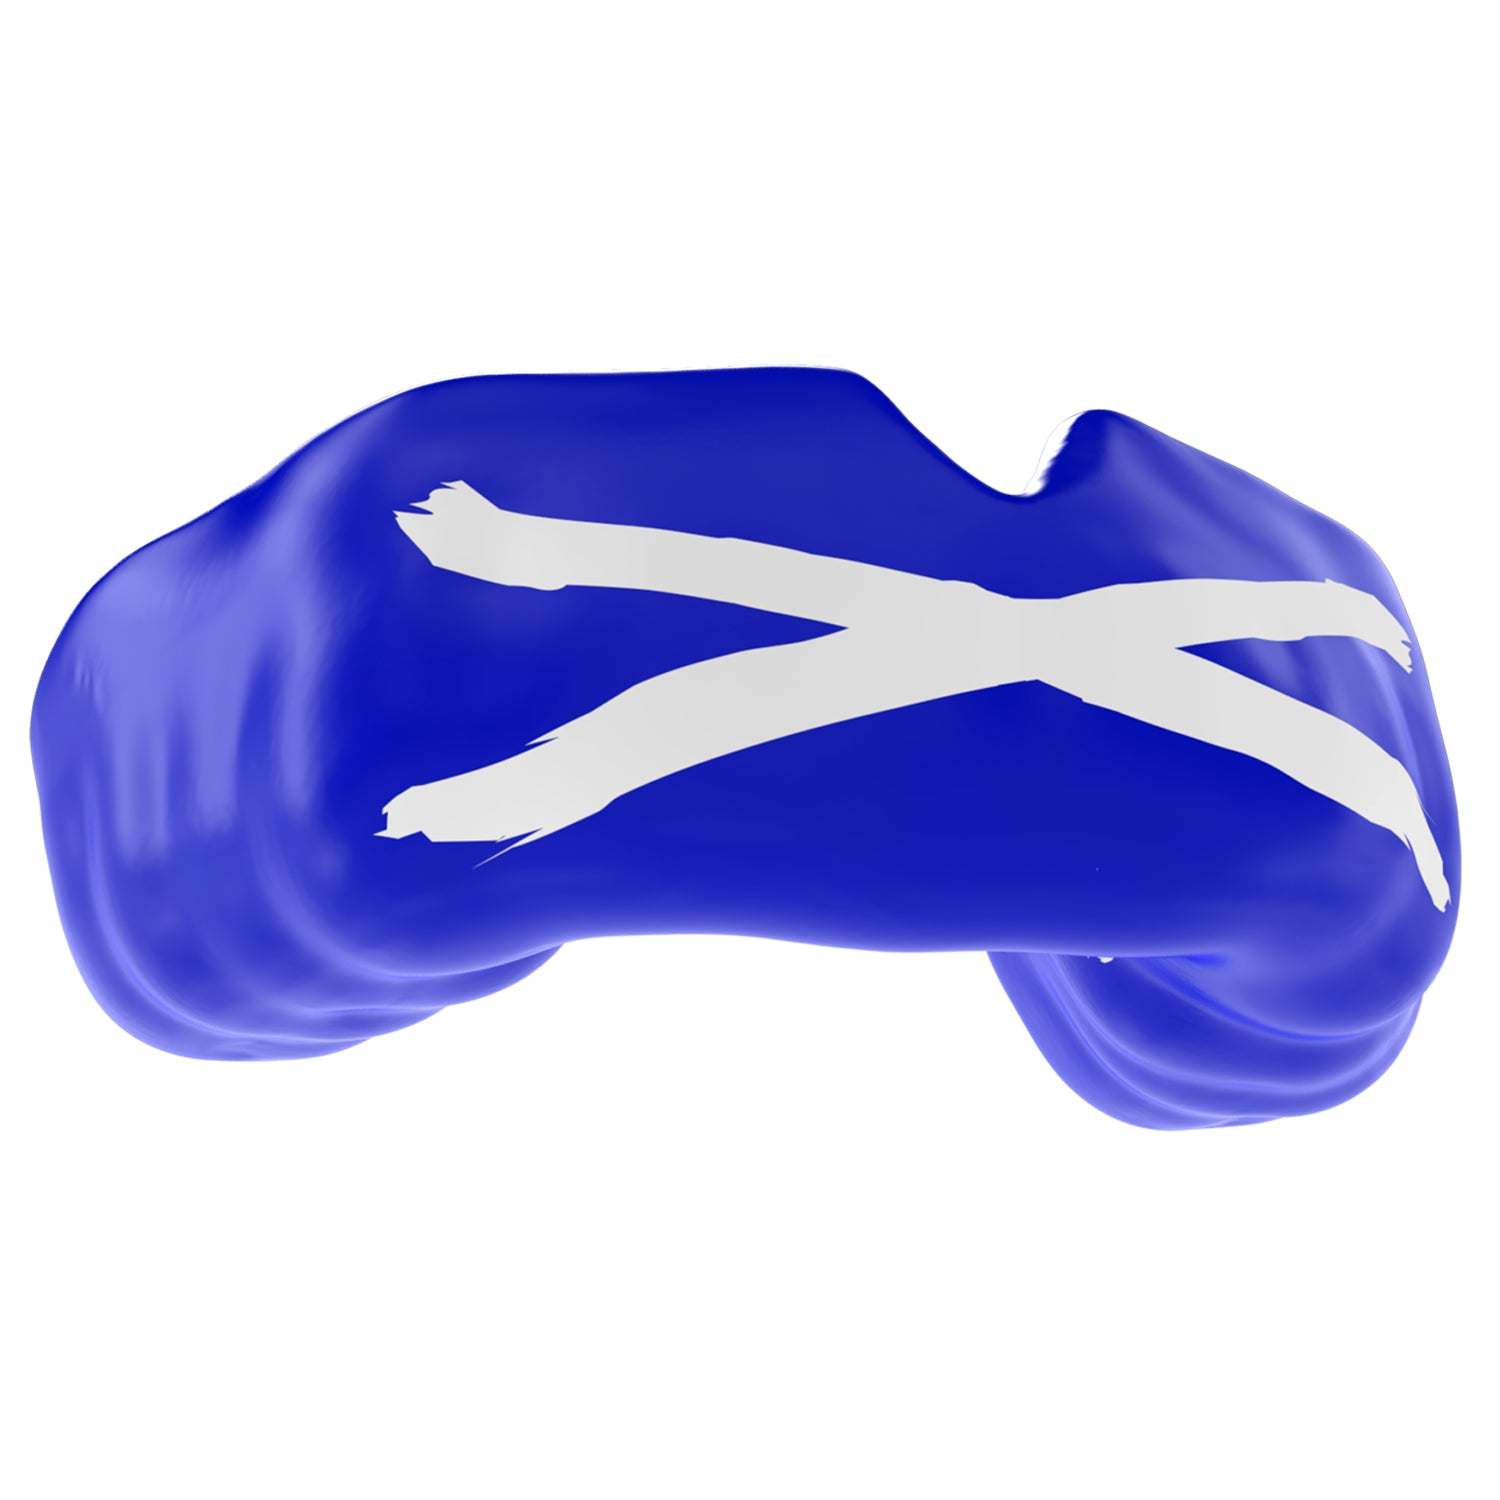 SAFEJAWZ® Popular Design Custom-fit Mouthguard - The Scot